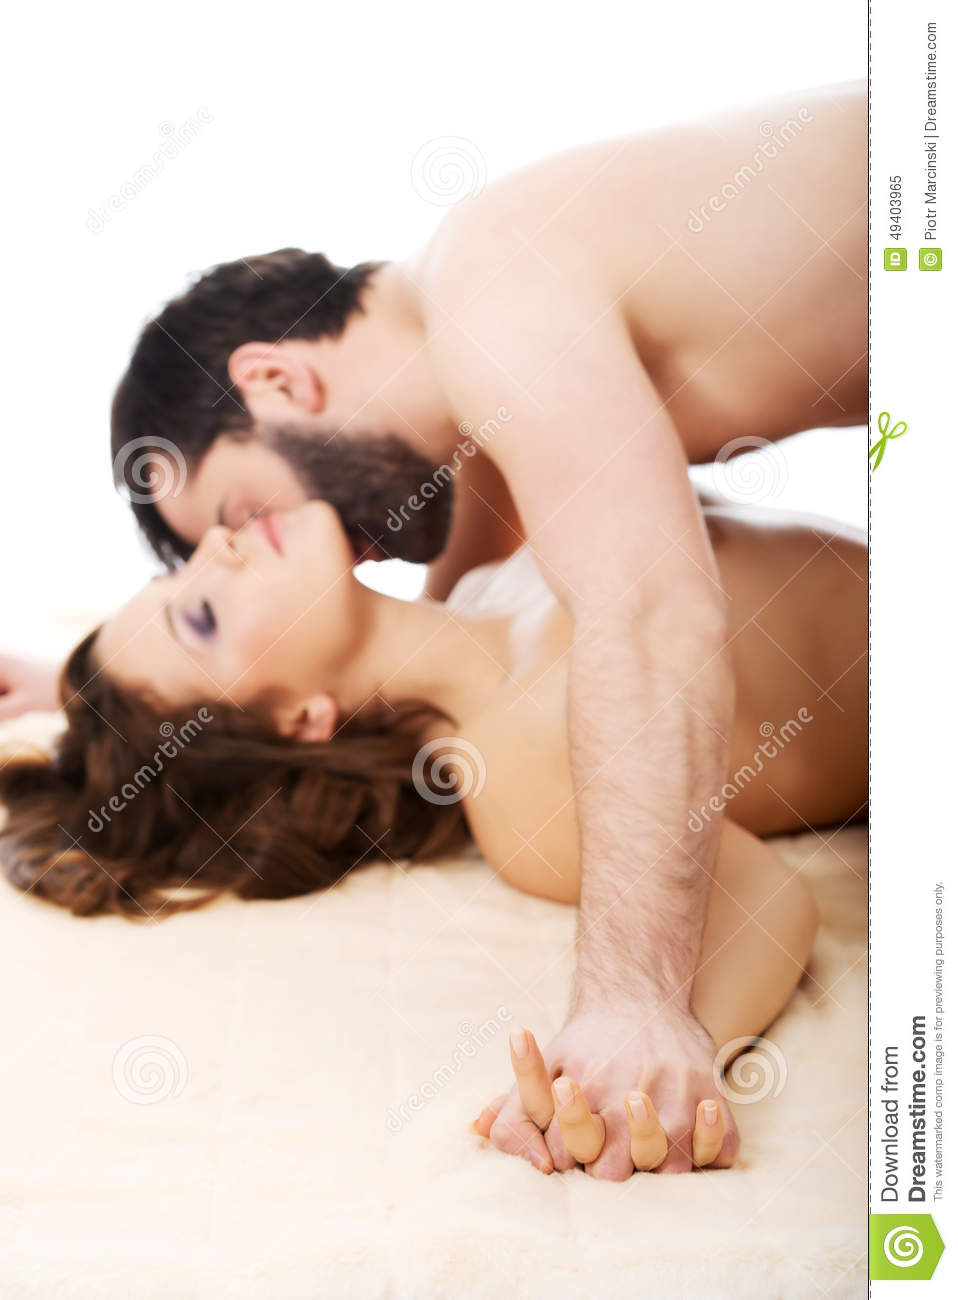 Man Kissing Woman In Bedroom Stock Image - Image Of -7314